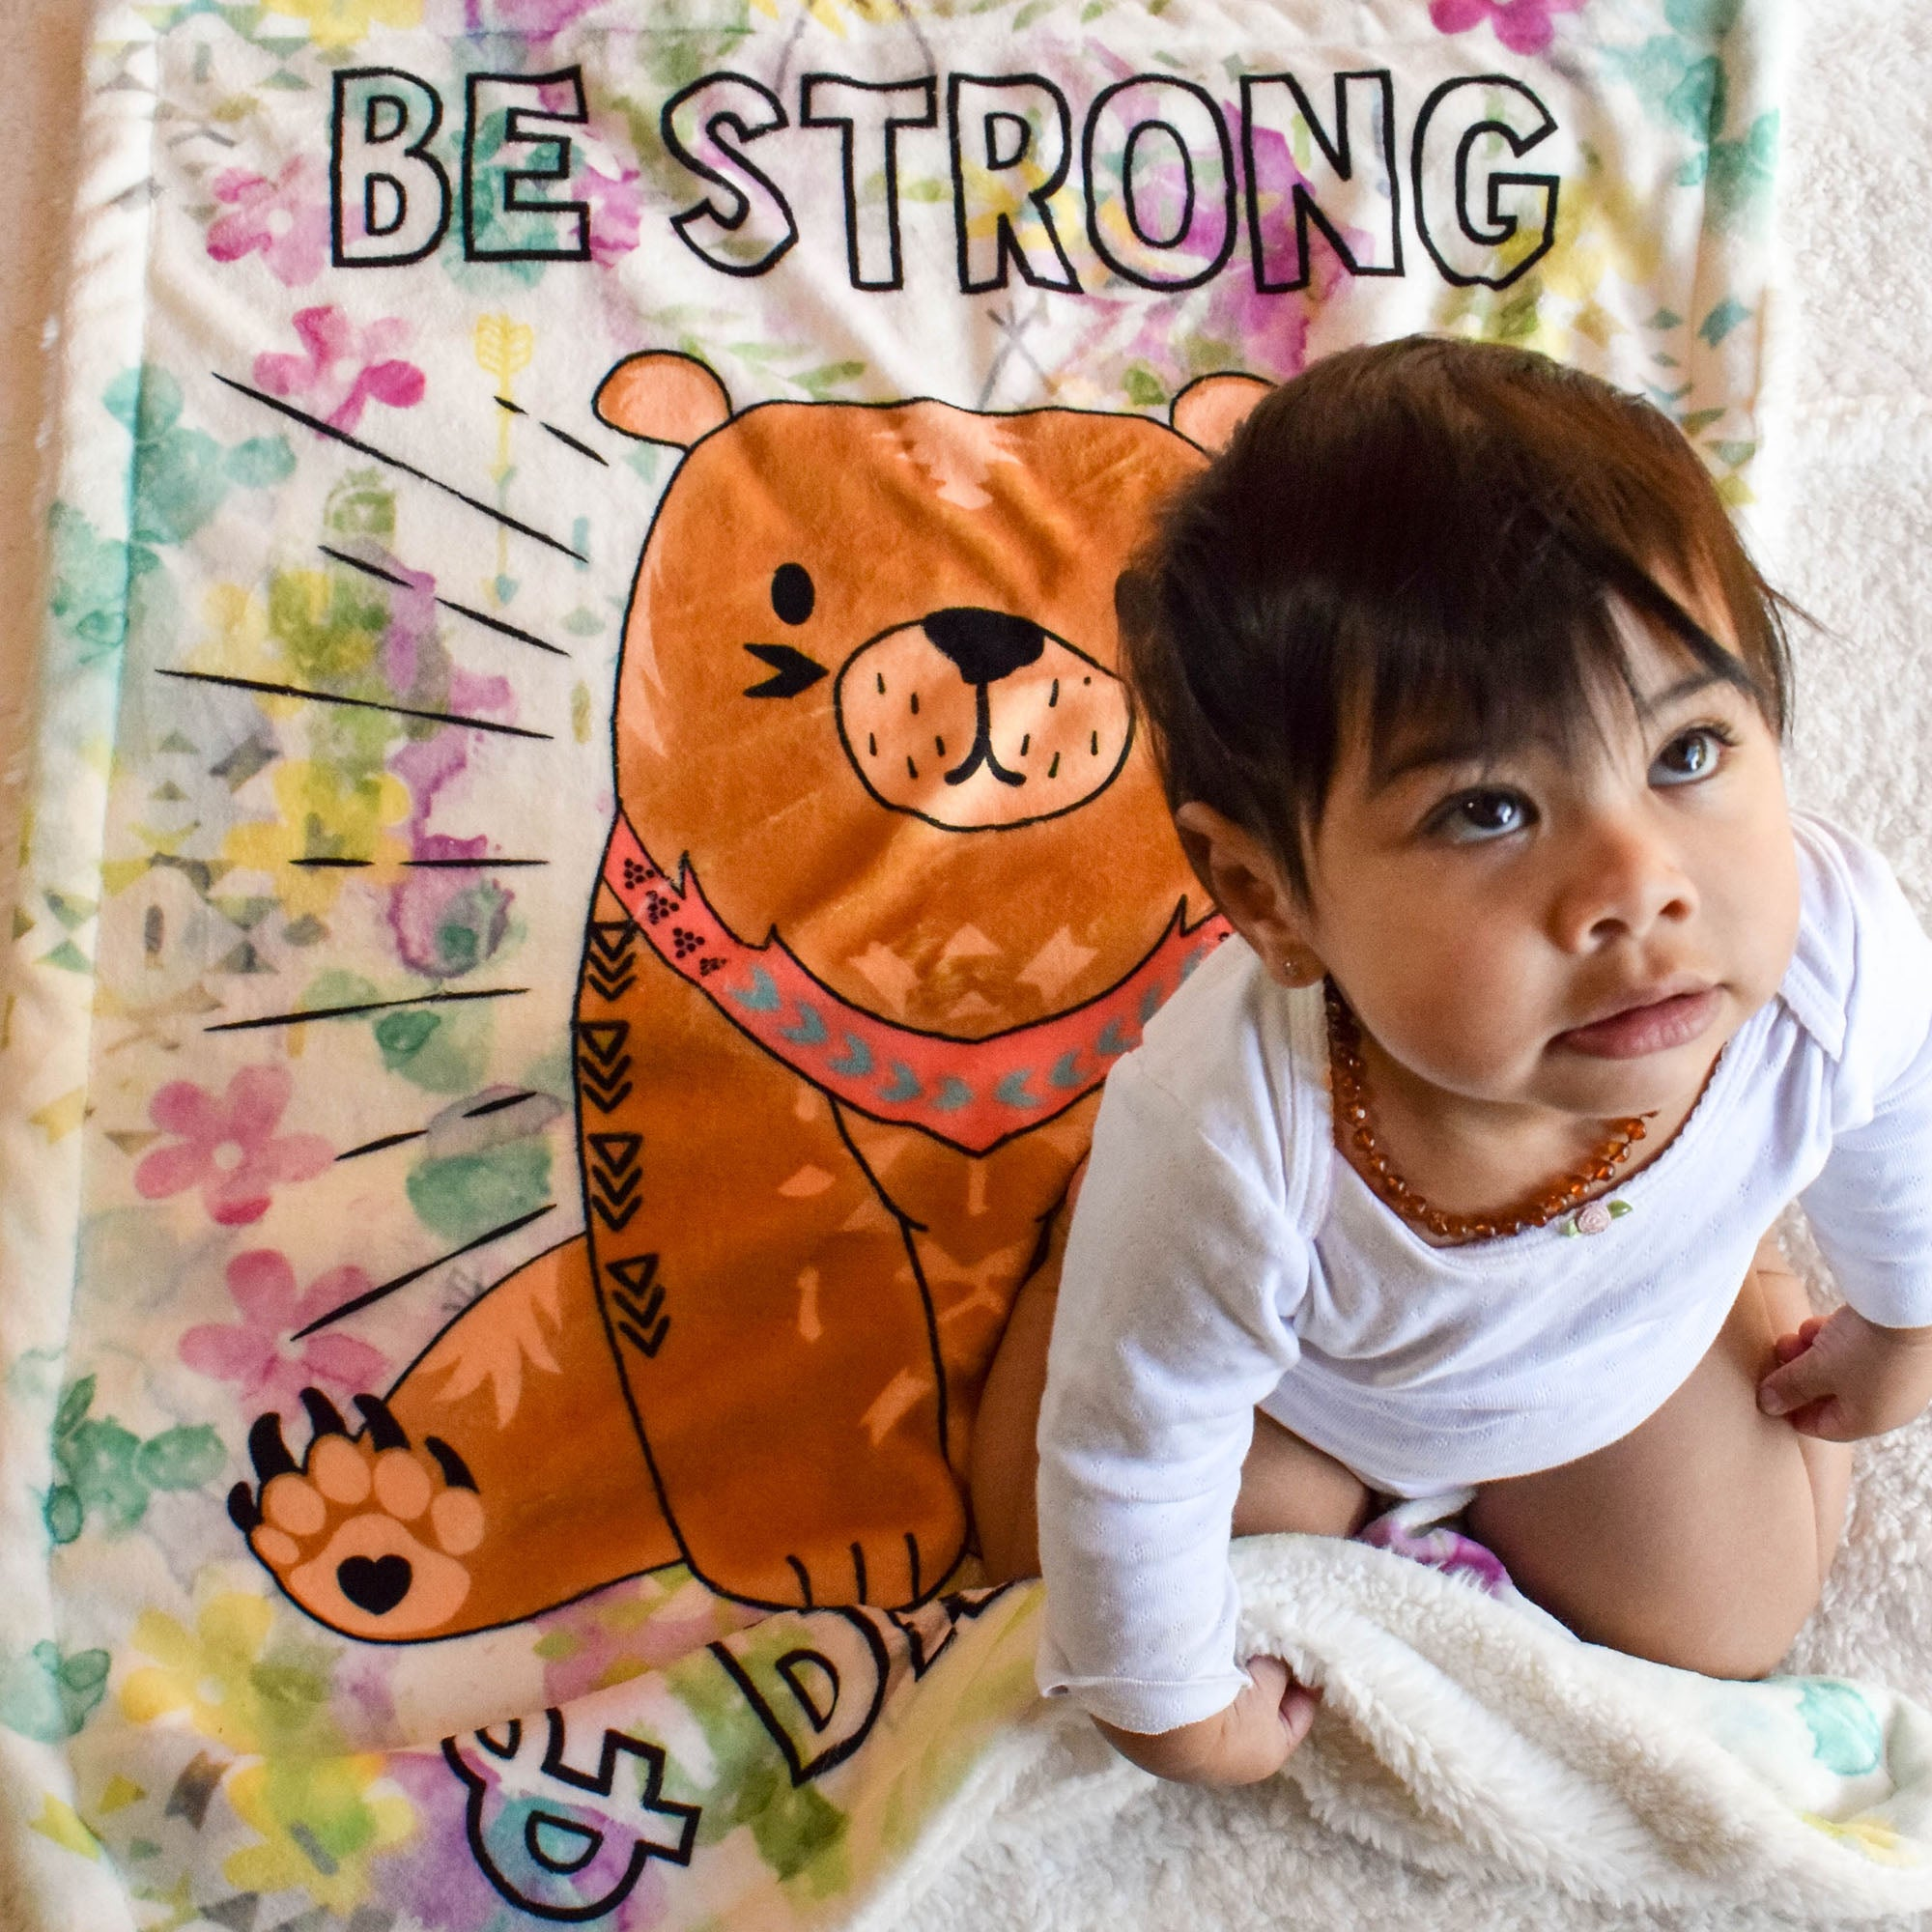 Baby Looking Up on Be Strong Baby Plush Blanket